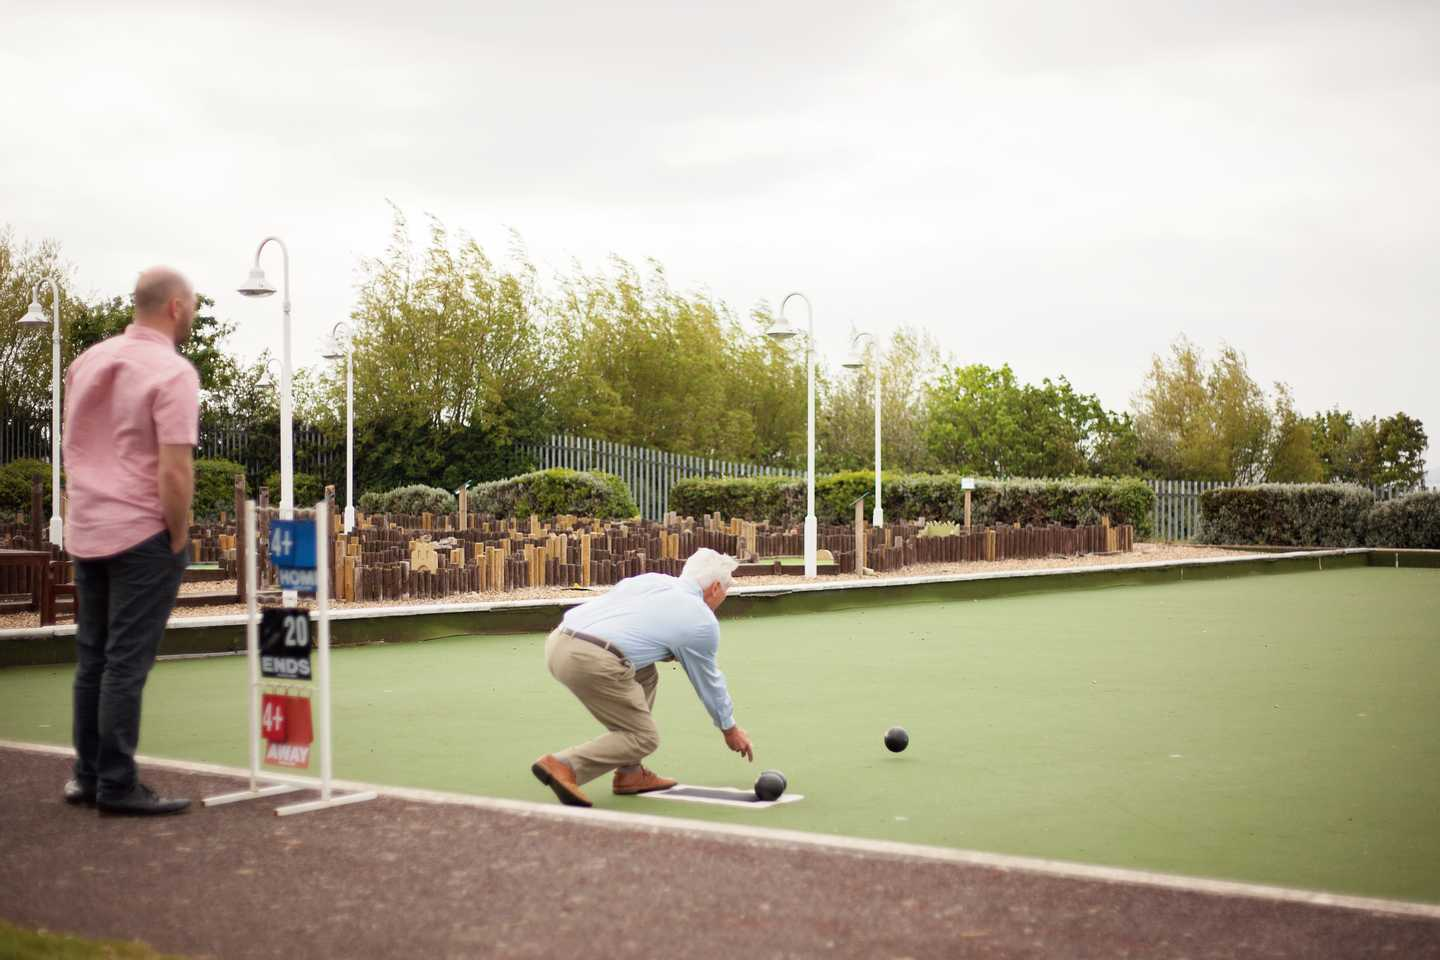 A guest bowling on the bowling green